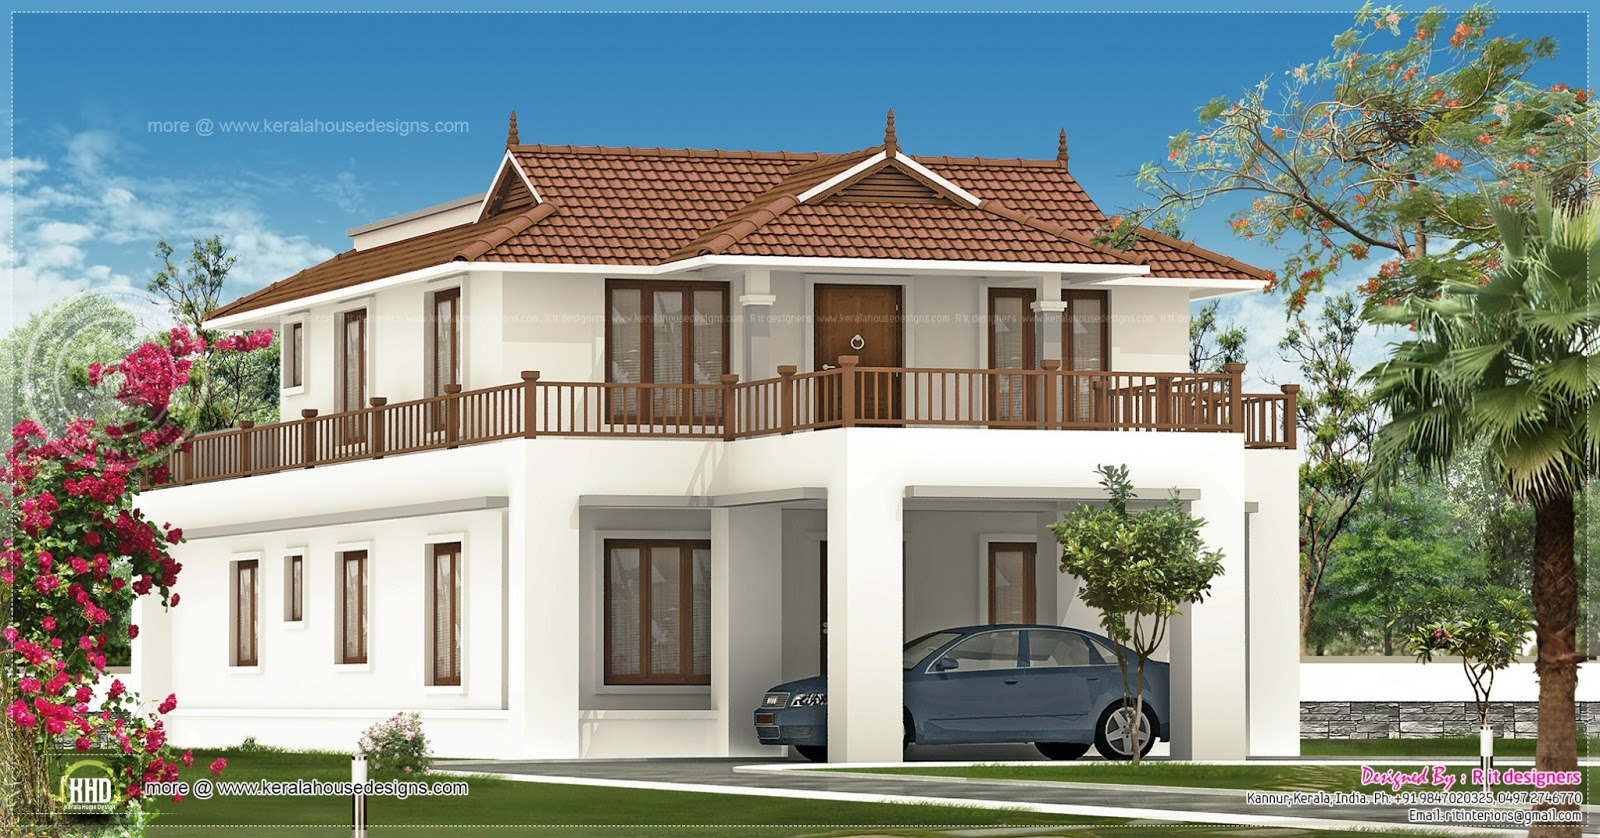 2820 square feet house exterior design kerala home - Exterior house painting cost per square foot ...